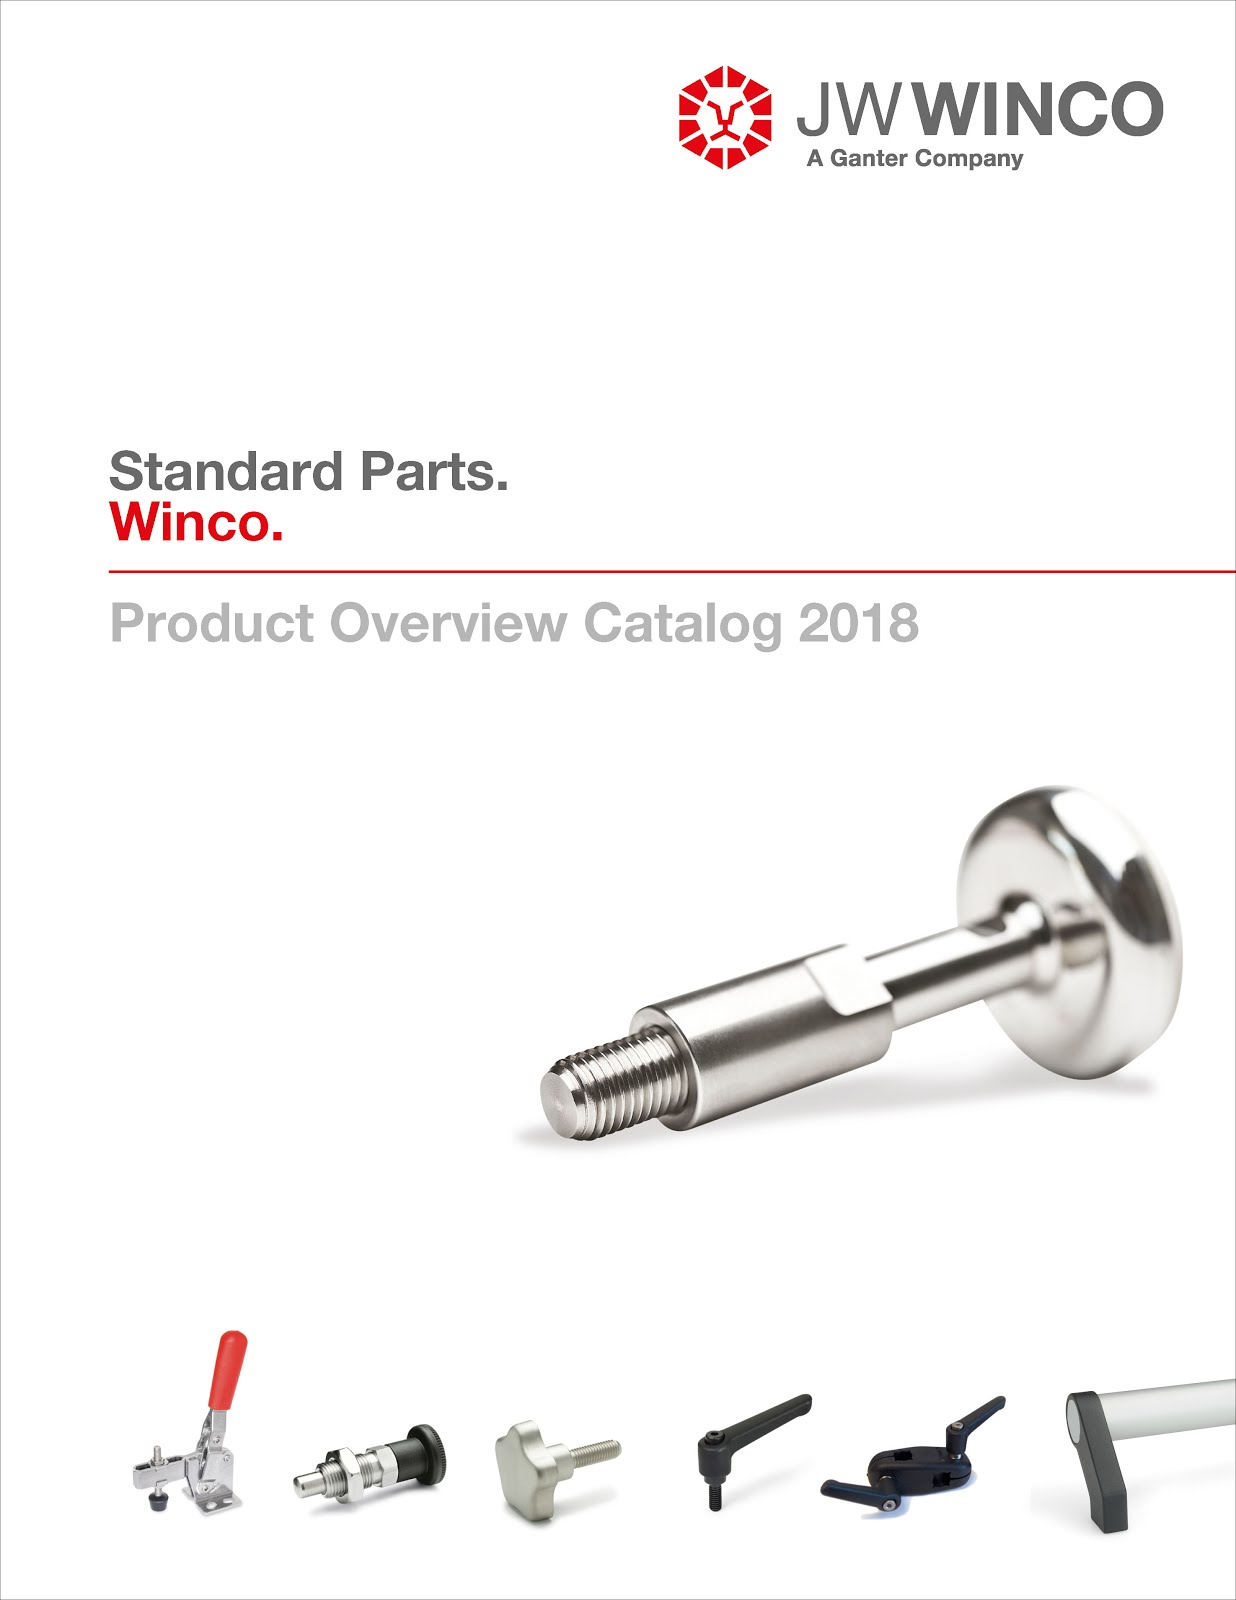 Our Product Overview Catalog